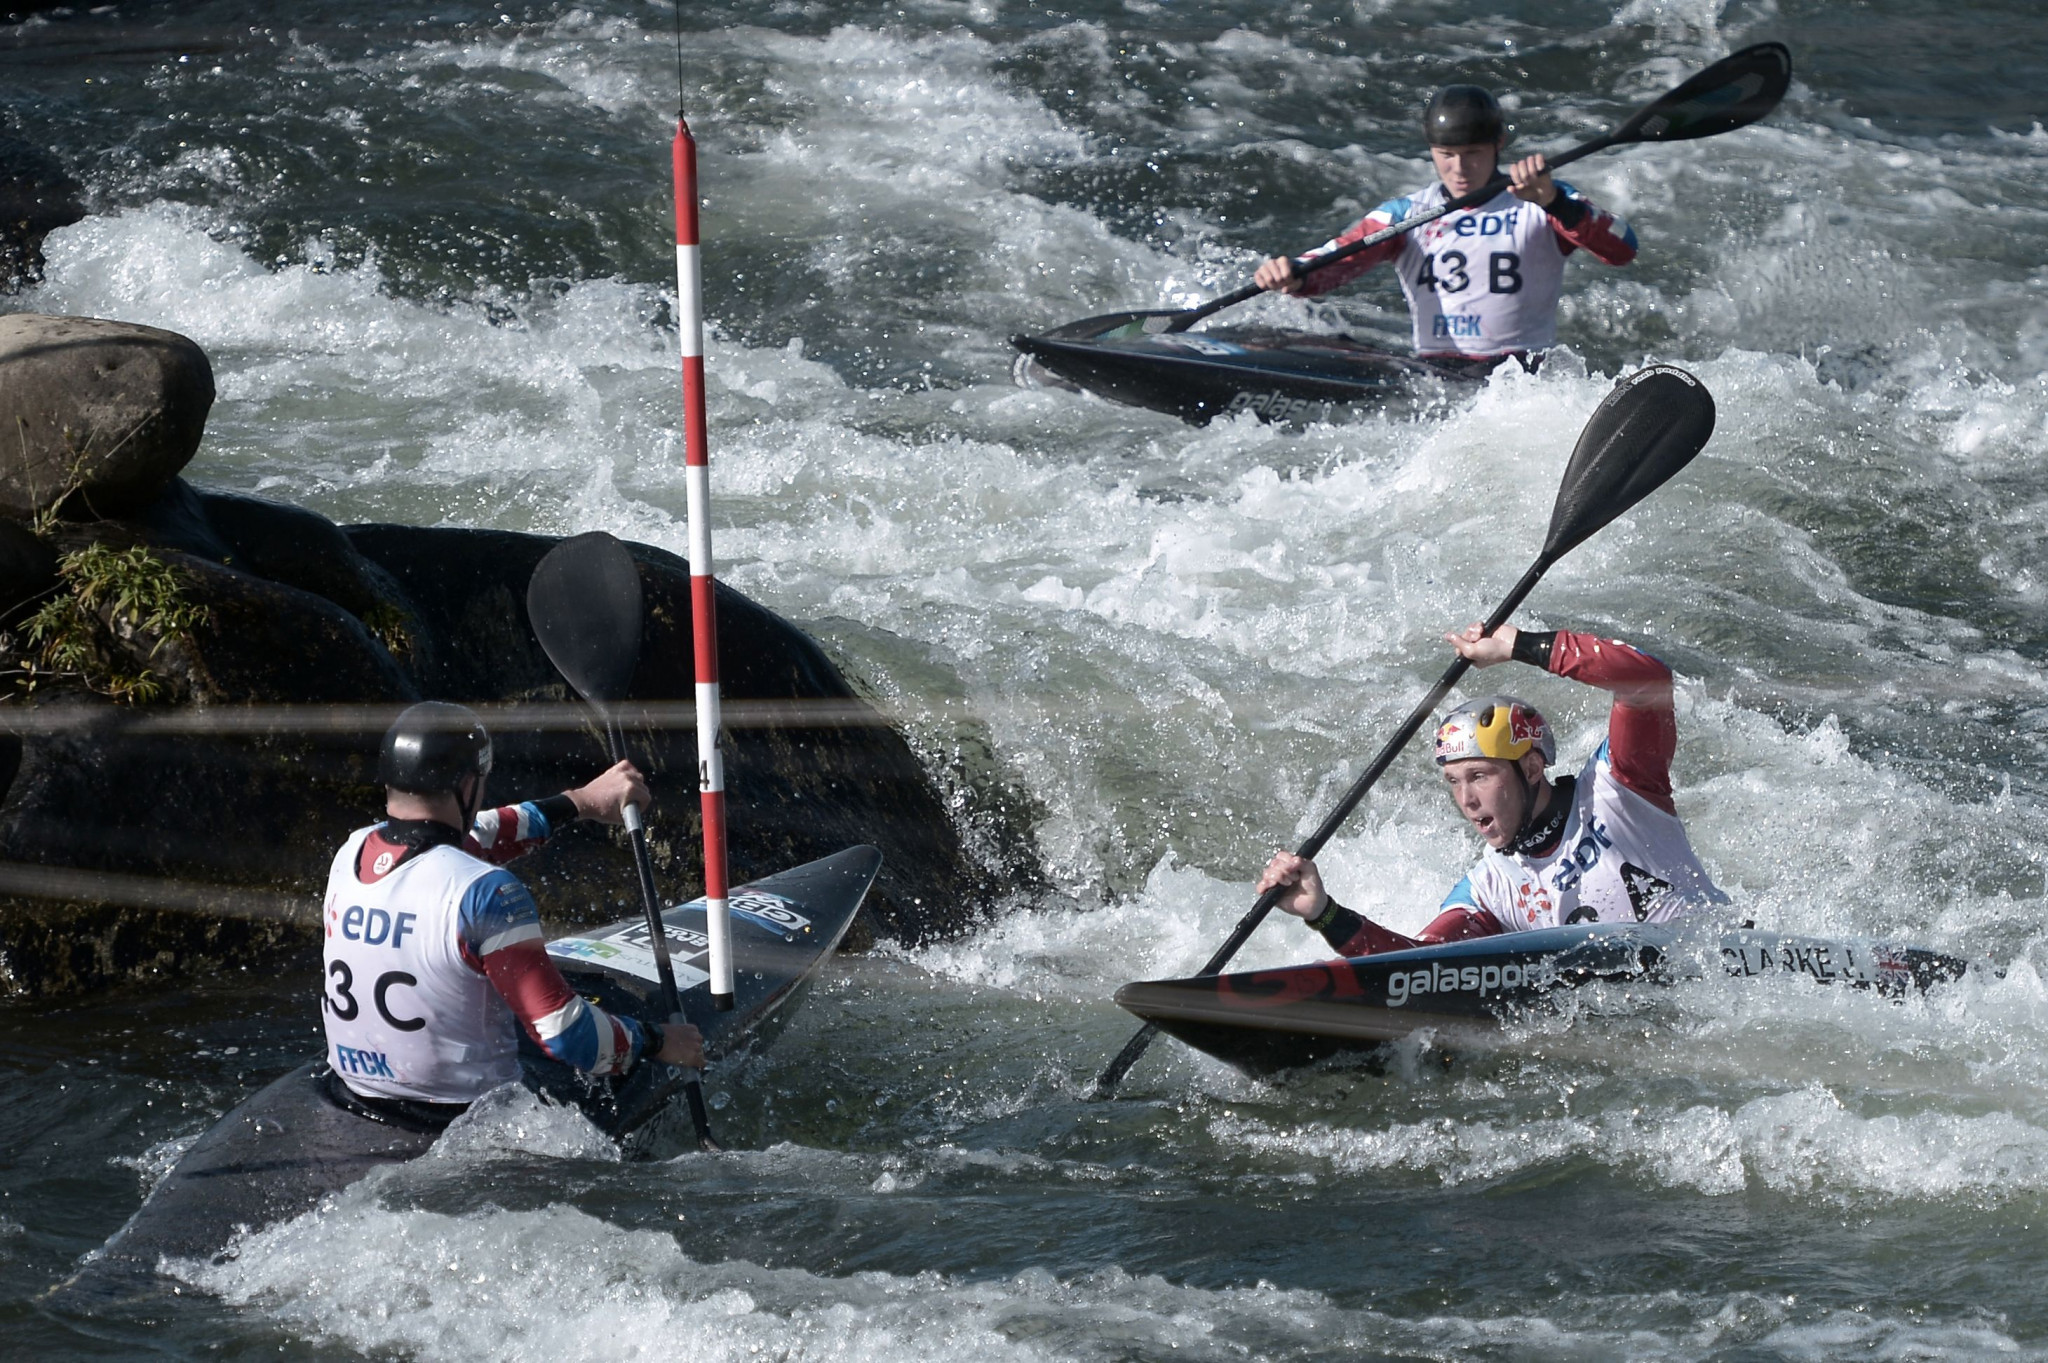 Action got underway at the Canoe Slalom World Championships with four team events in Pau ©Getty Images